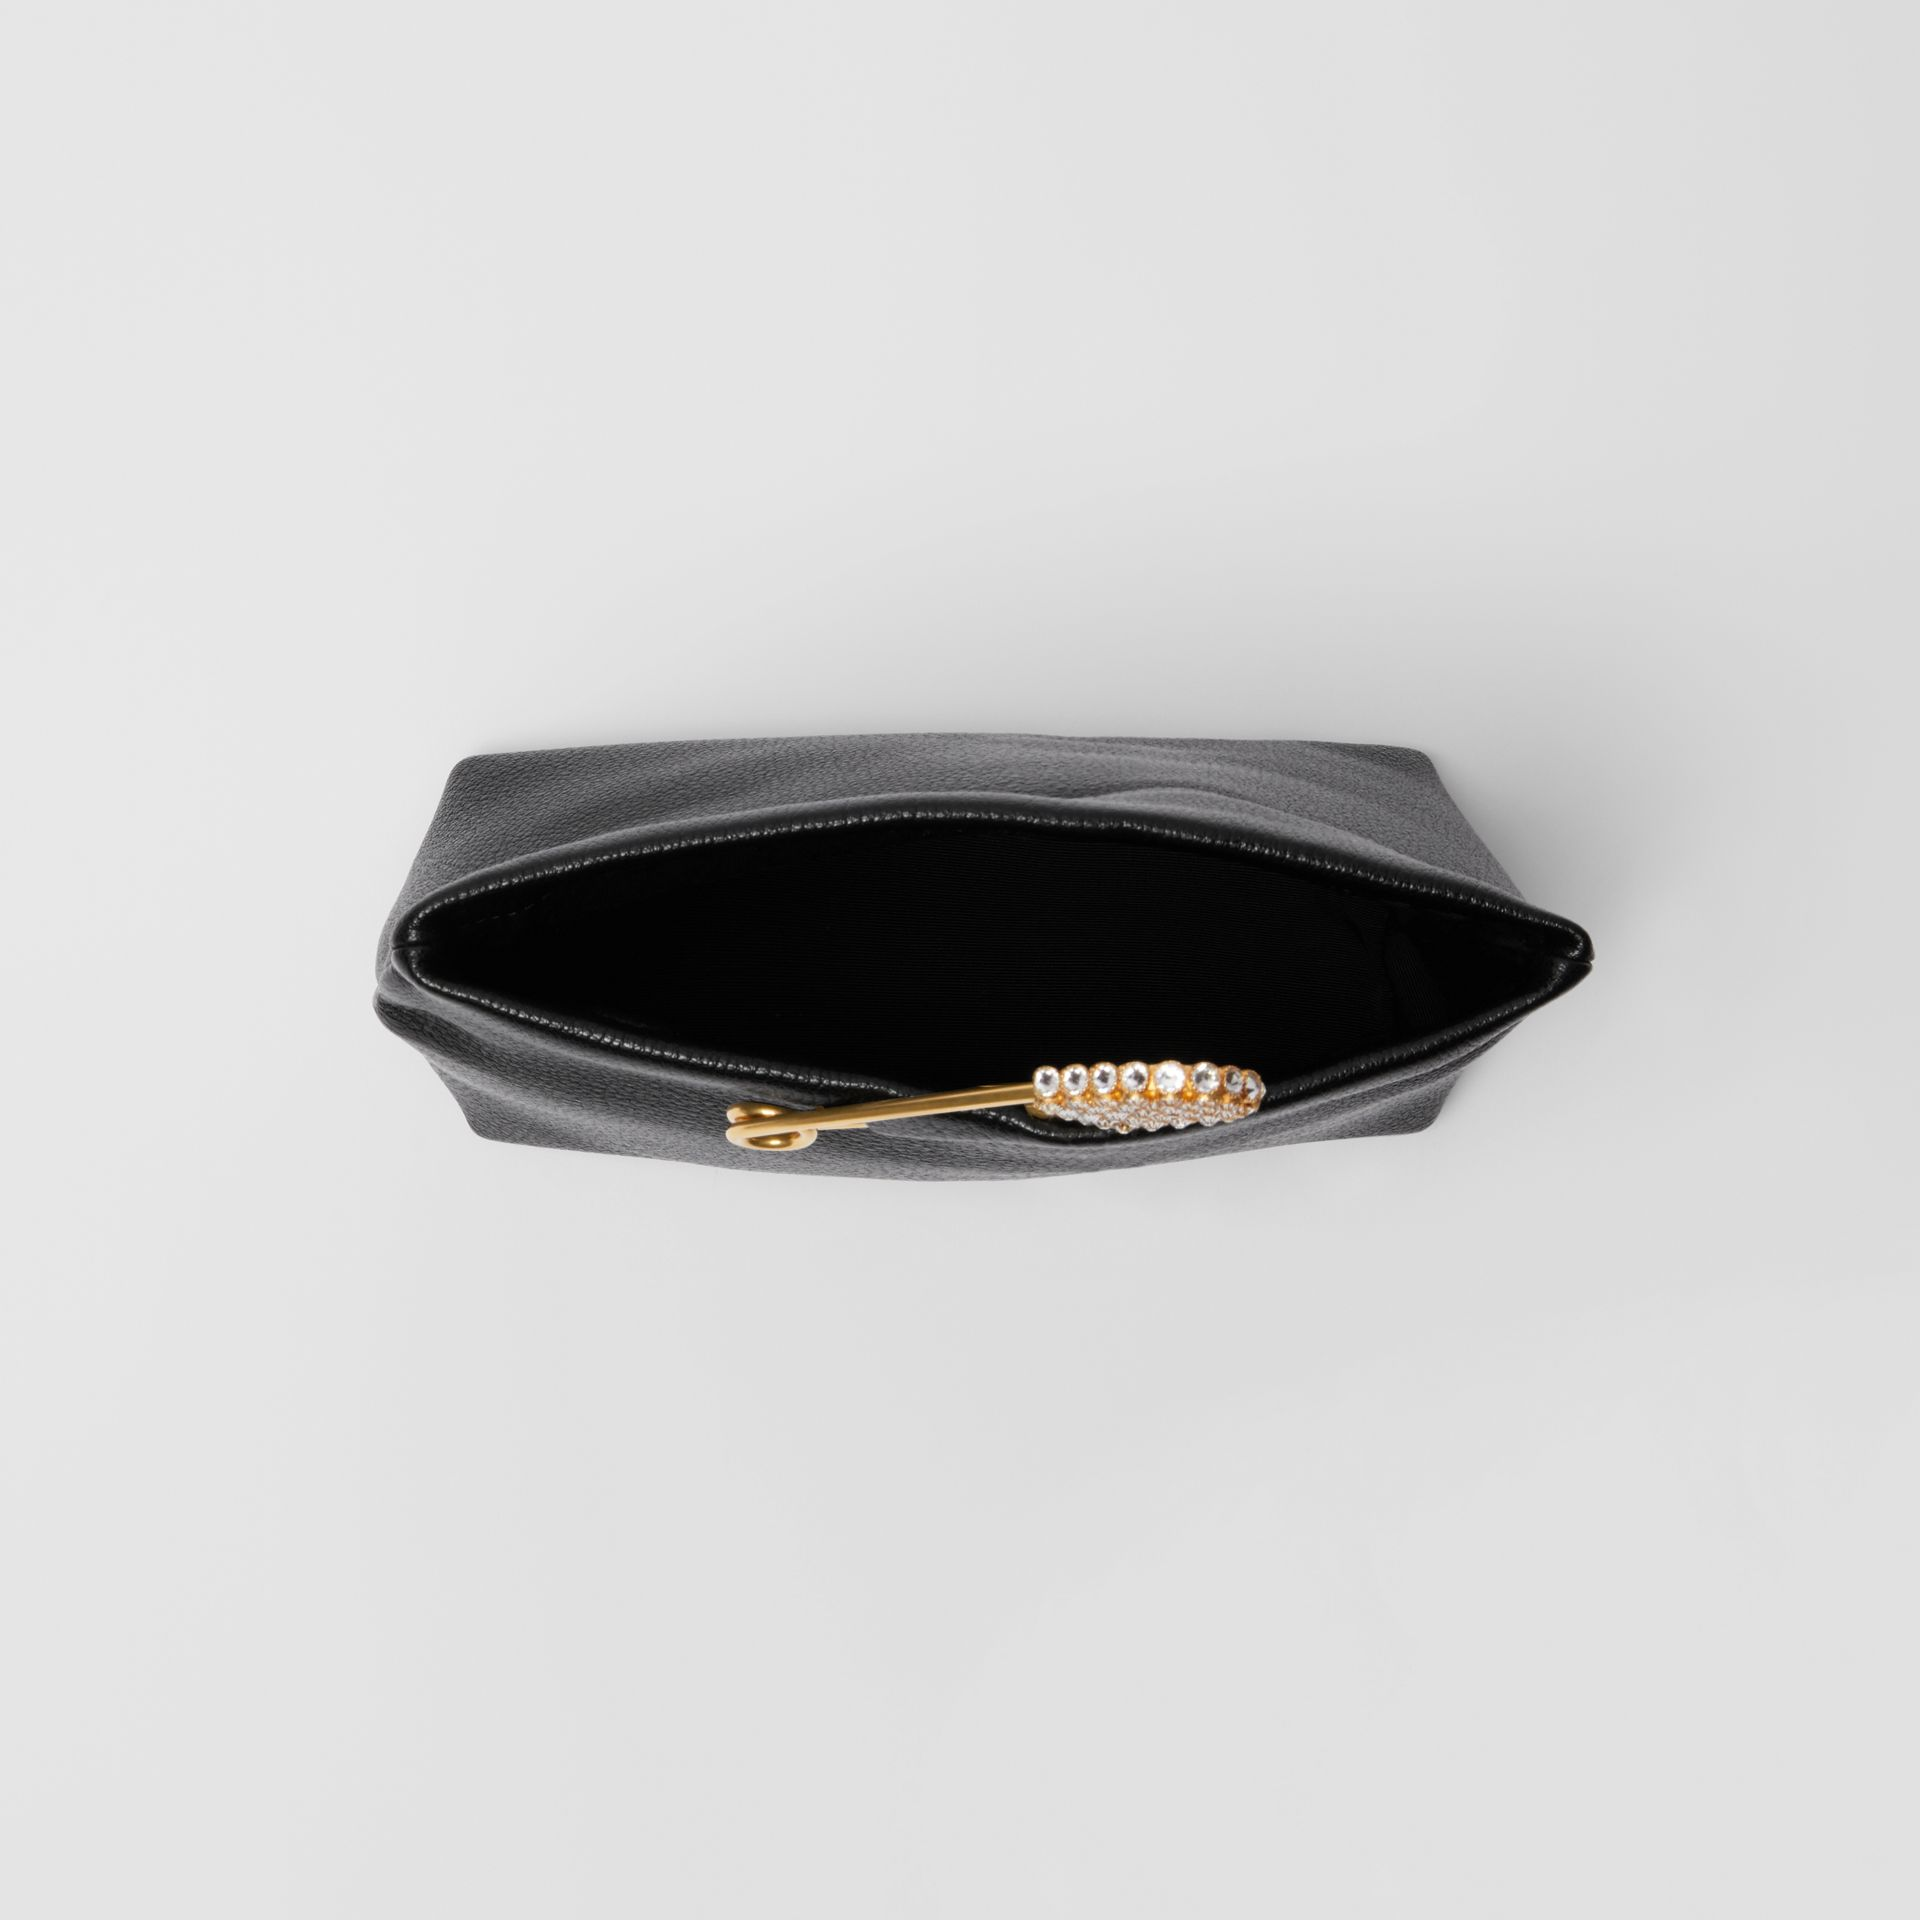 The Small Pin Clutch in Leather in Black - Women | Burberry - gallery image 4